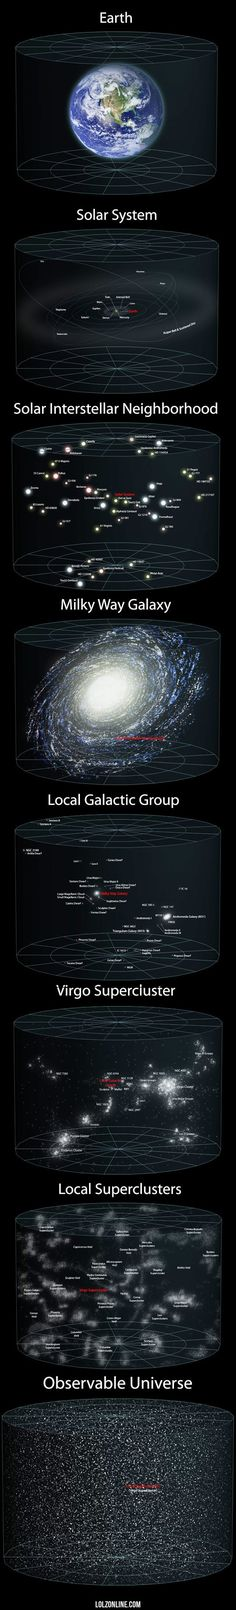 The size of our planet#funny #lol #lolzonline